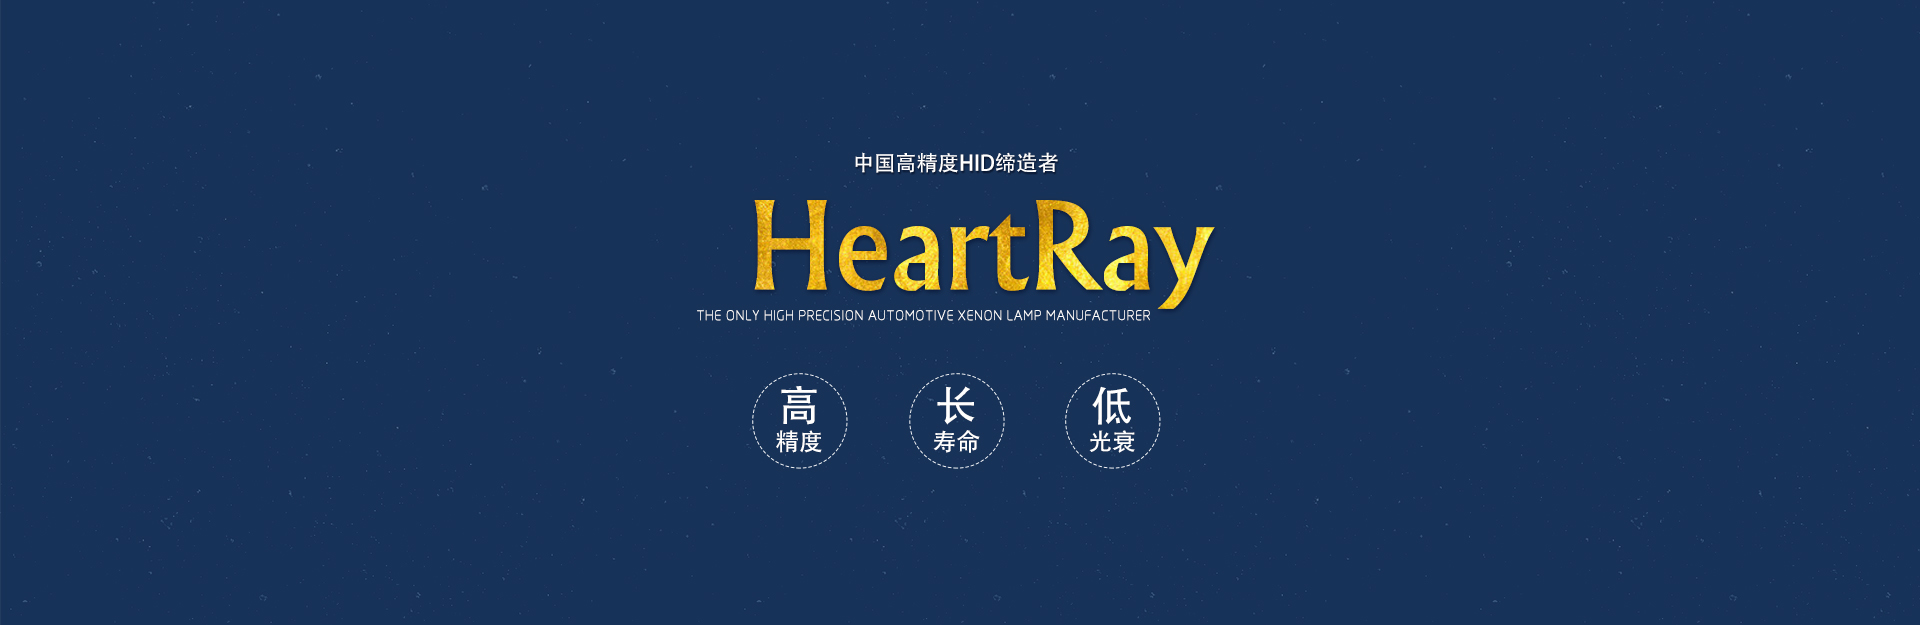 heartray